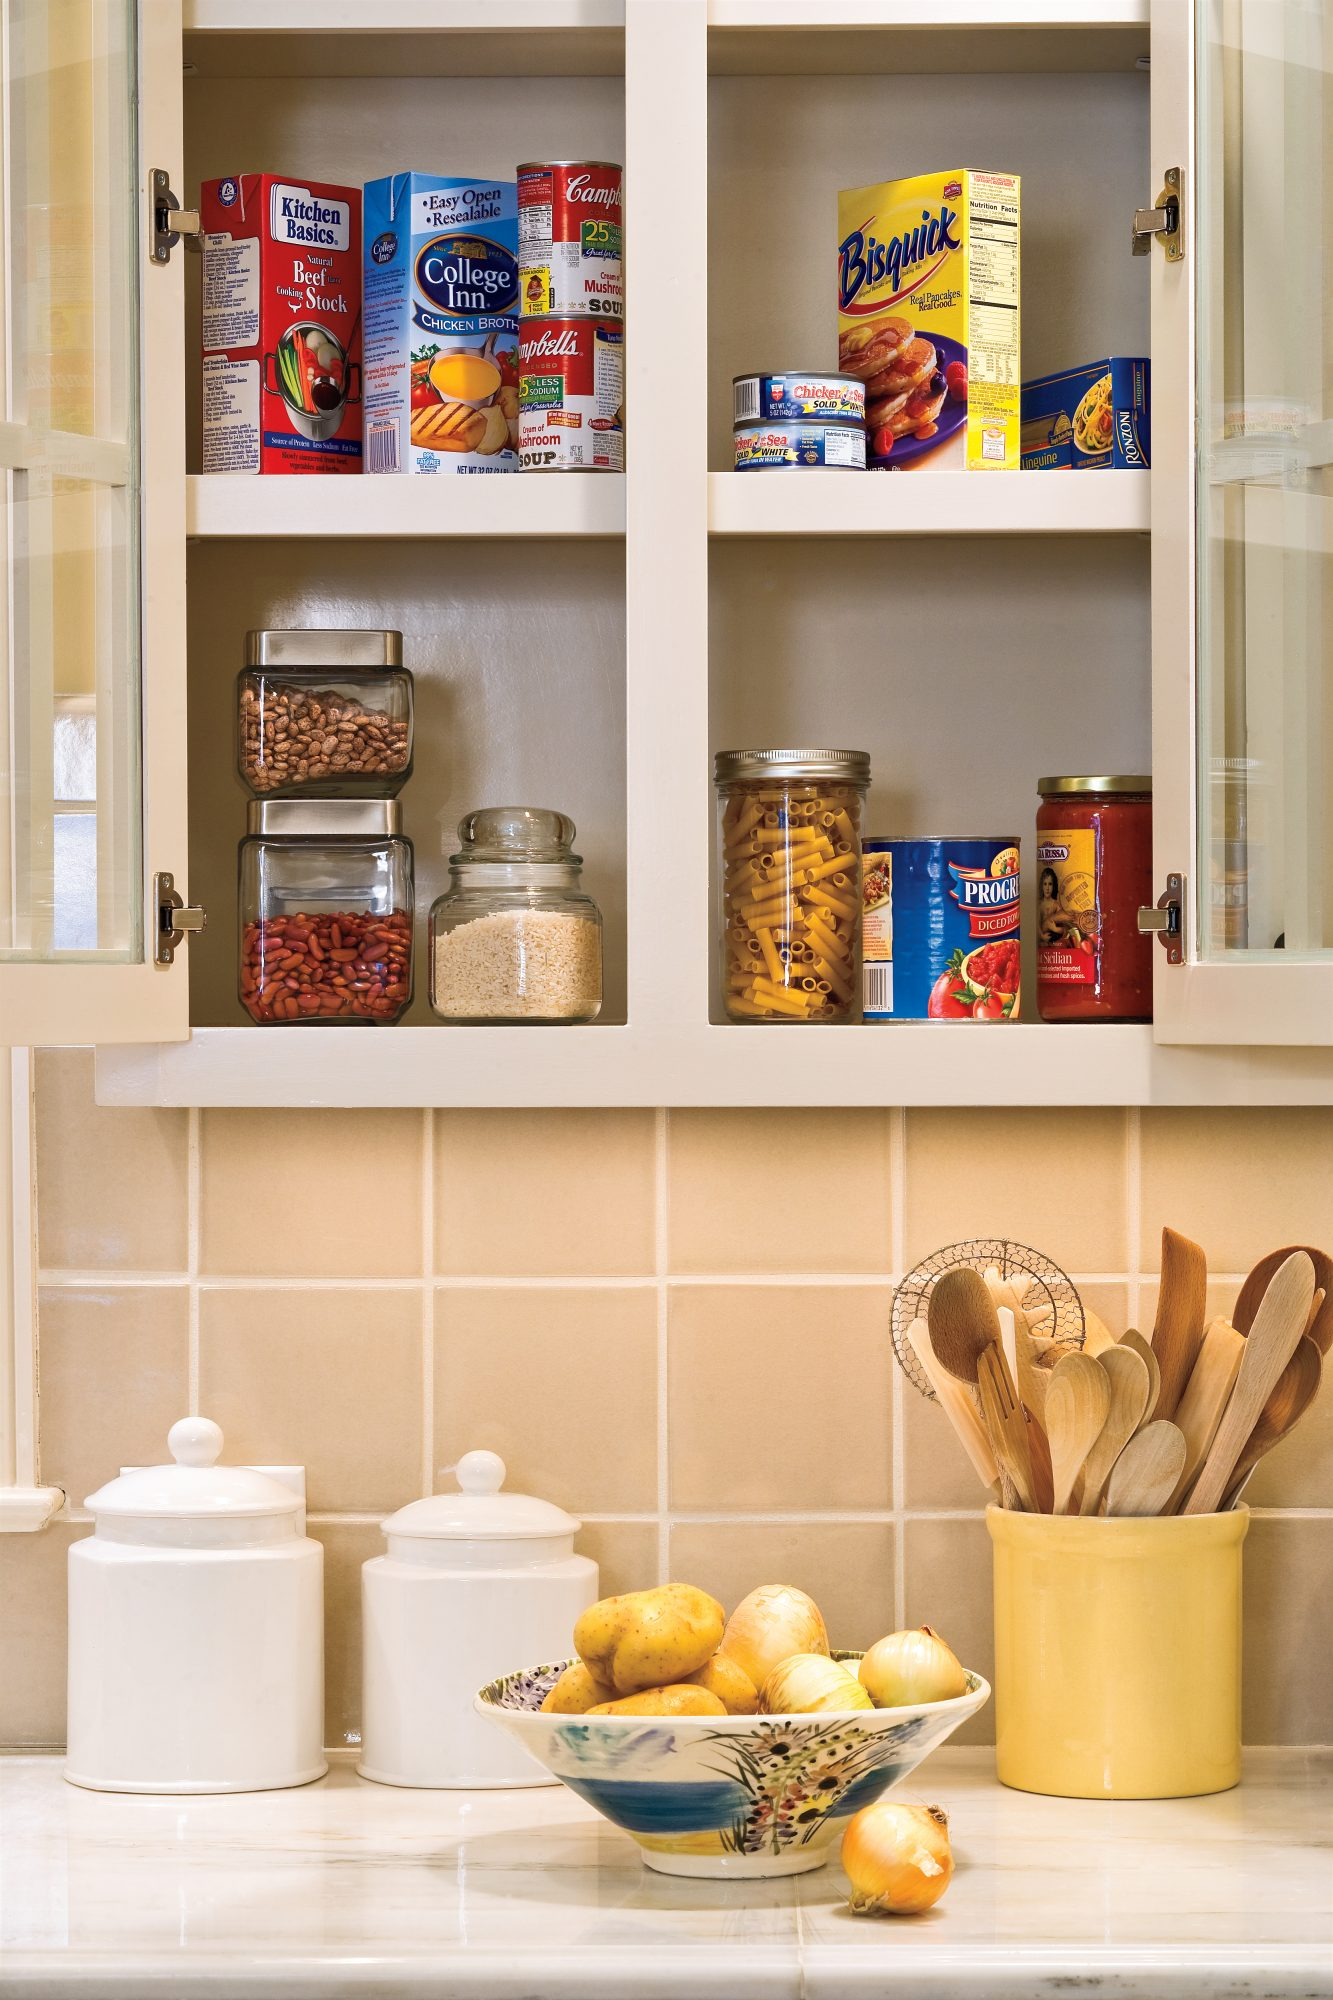 Test Kitchen's Top 10 Pantry Staples